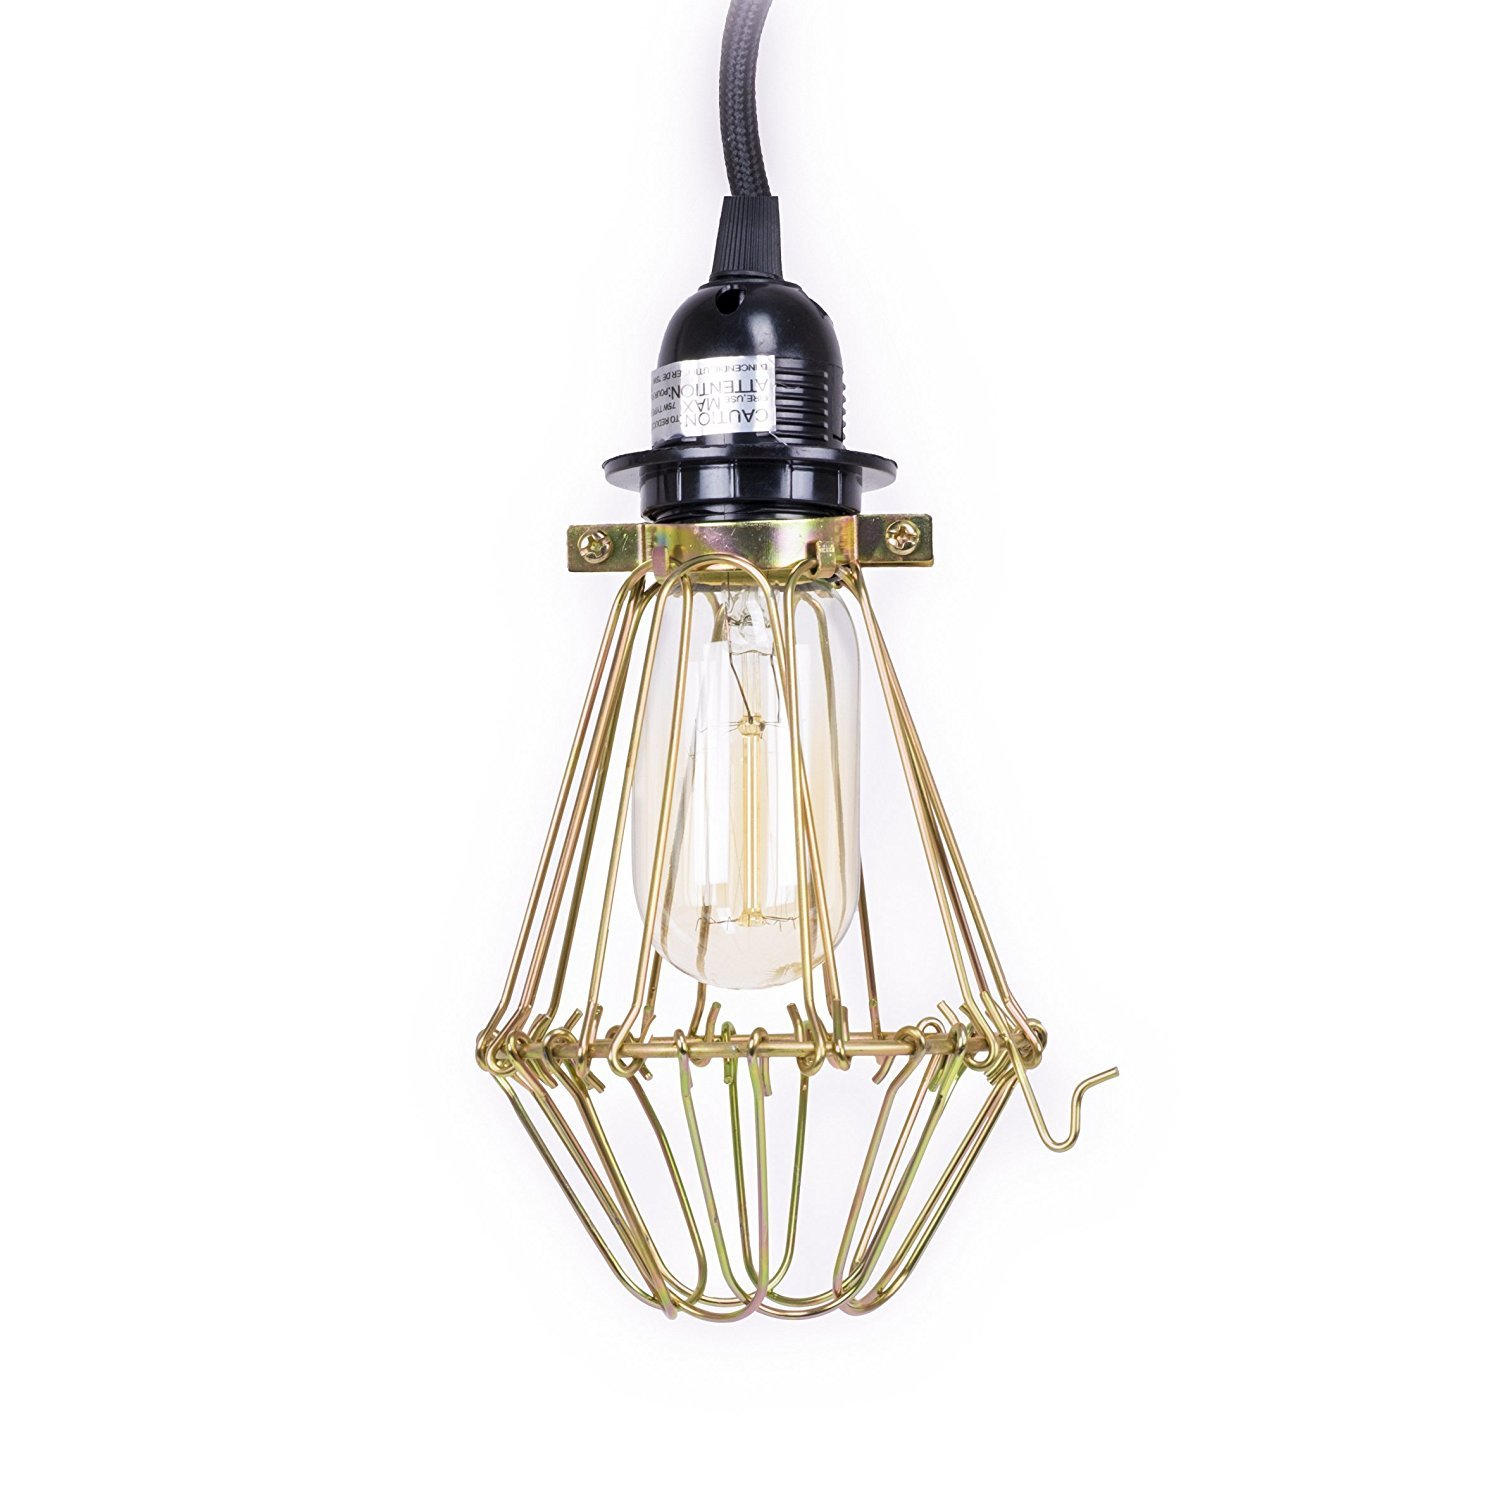 Modern Design Metal Wire Adjustable Pendant Cage Light Fixture 15' Plug-in Cord with Toggle Switch and Edison Bulb in Bronze